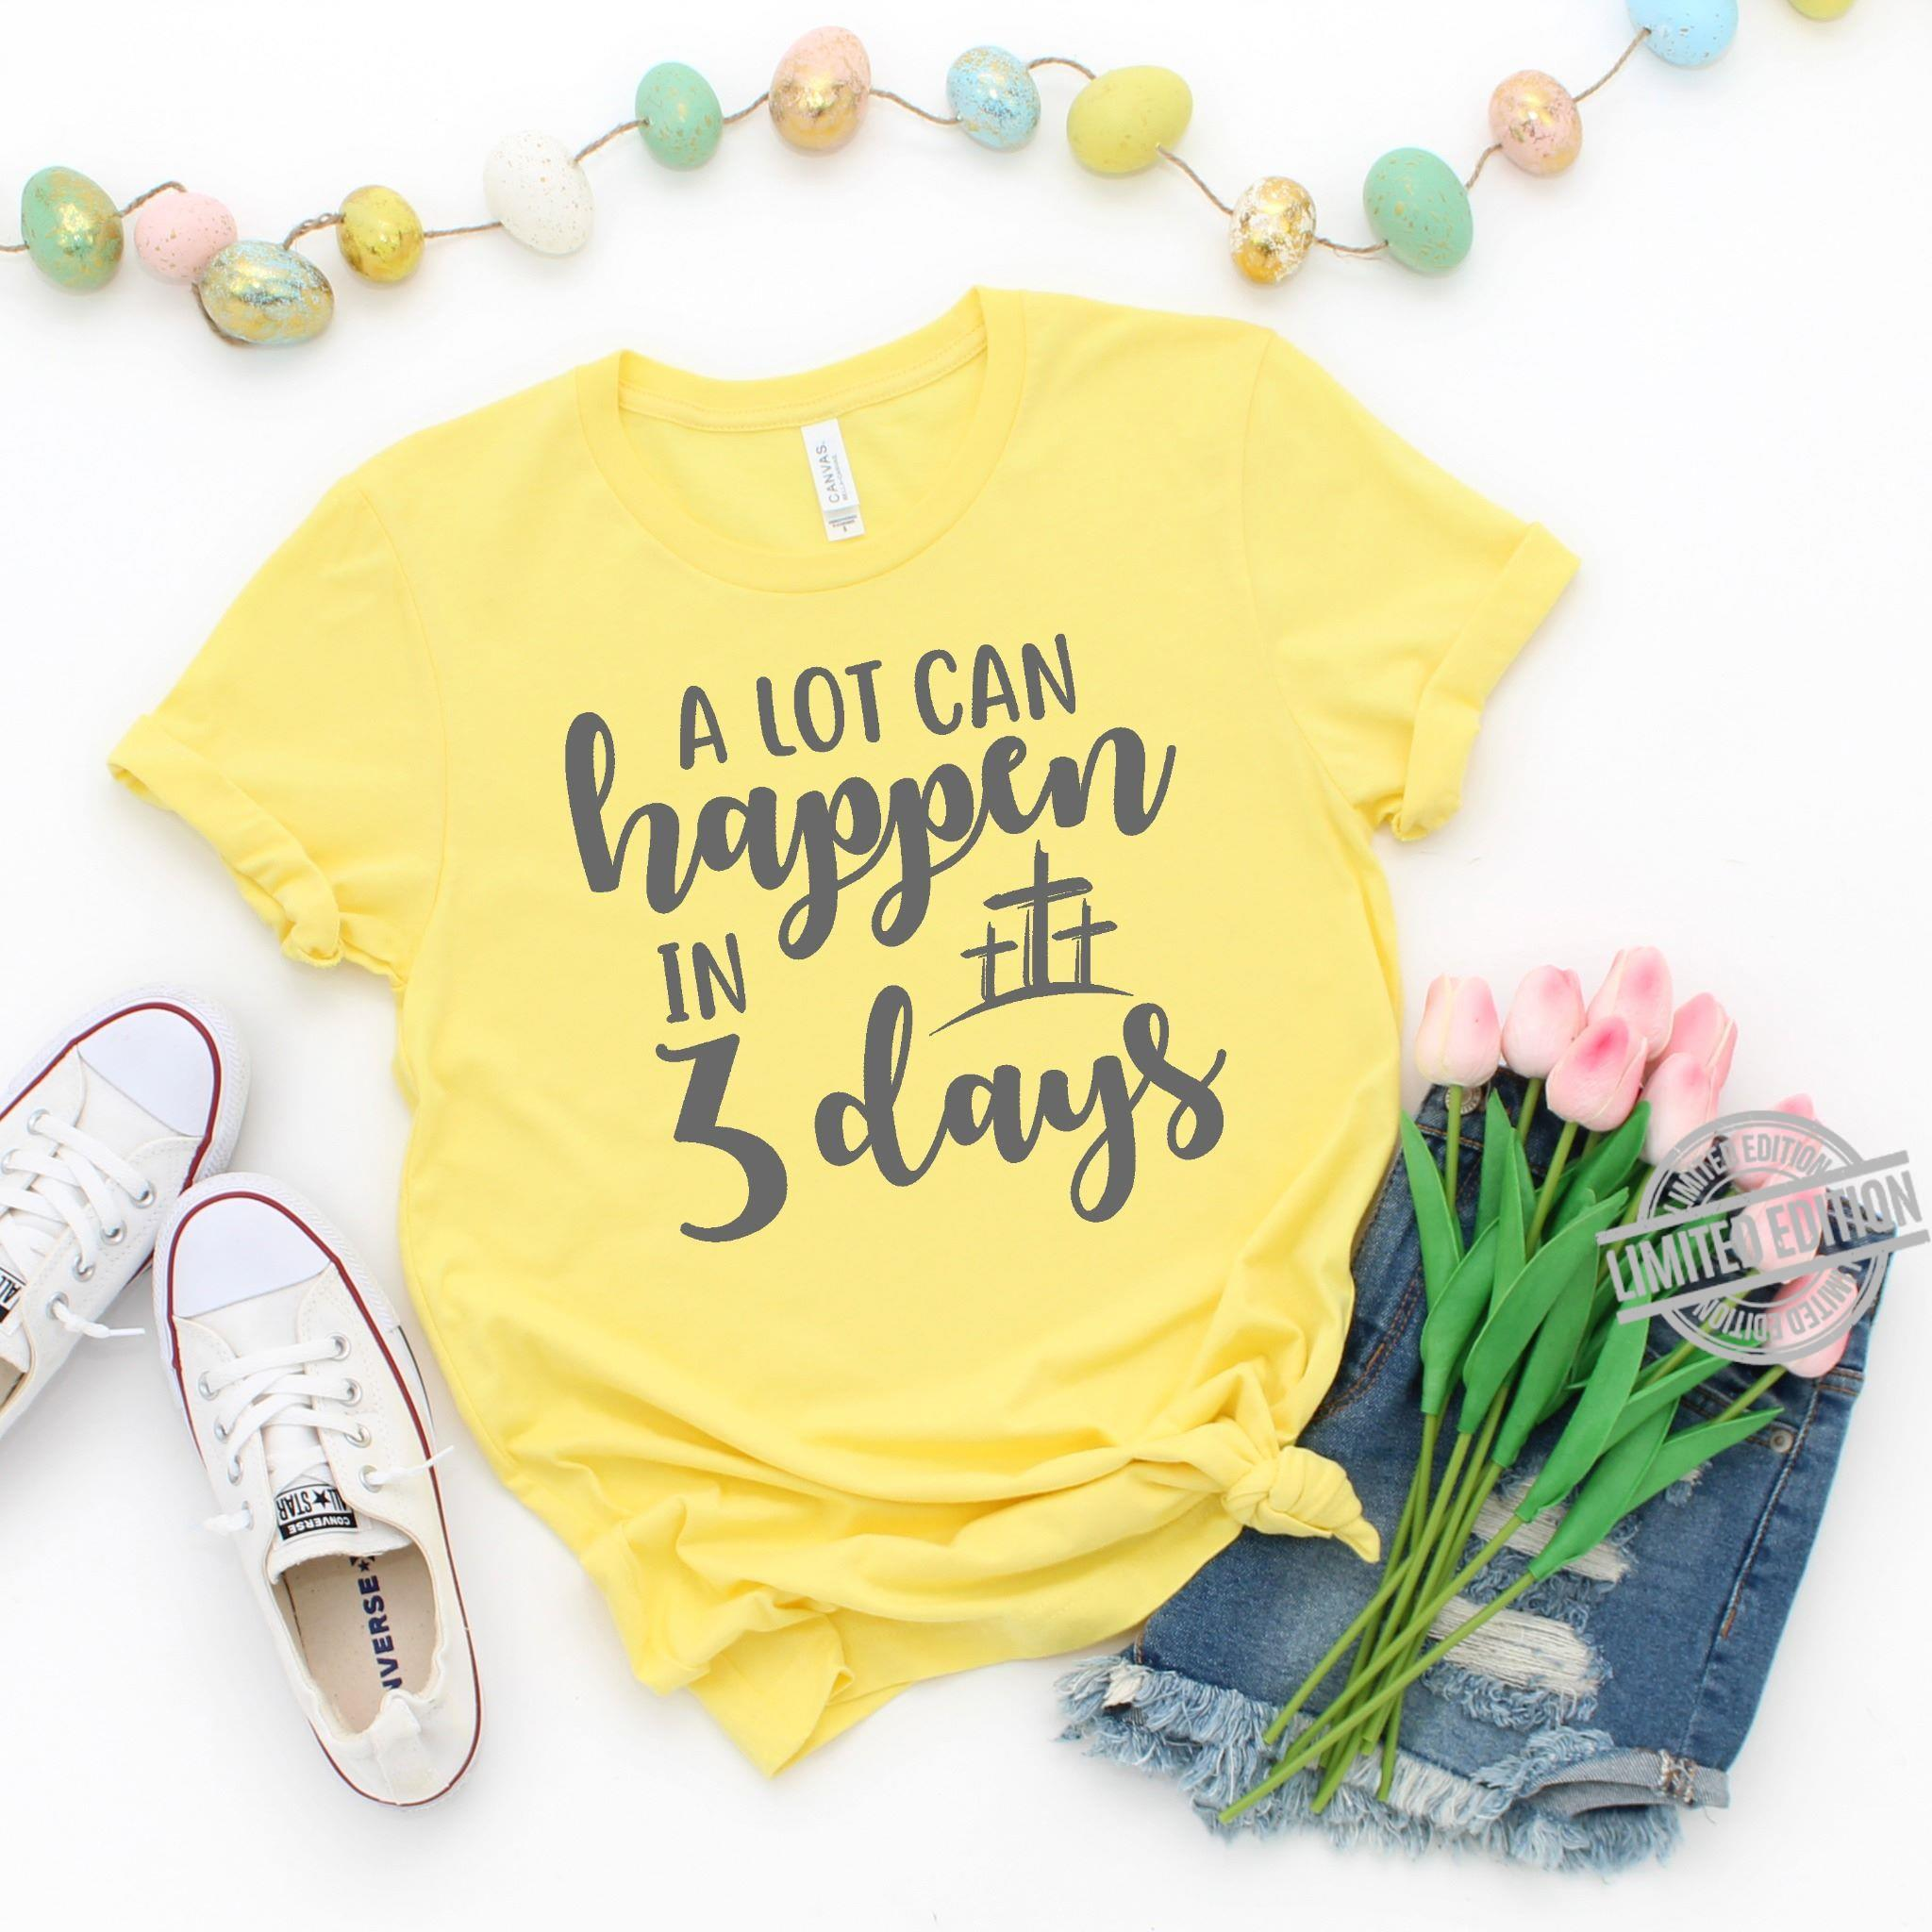 A Lot Can Happen In 3 Days Shirt